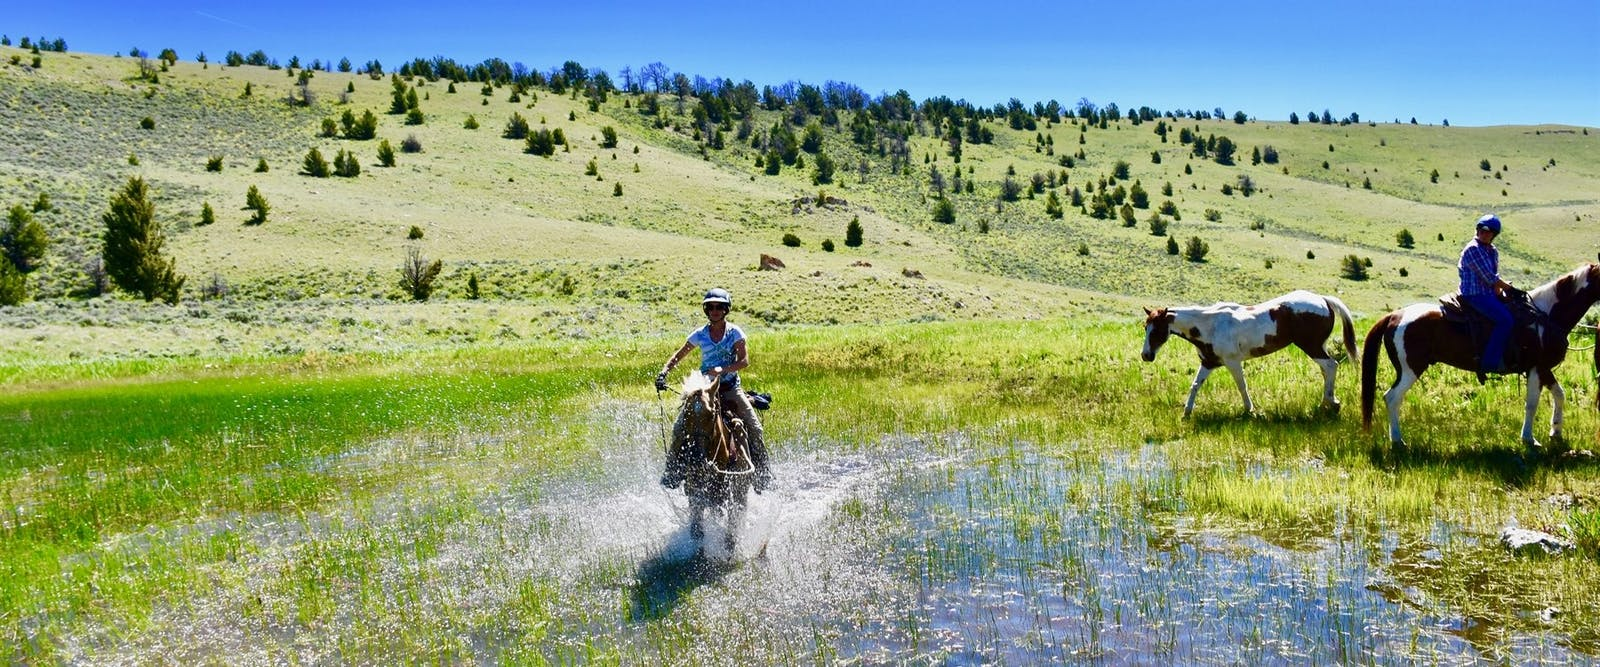 Riding at Medicine Lodge Horse Drives at Silver Spur Ranch